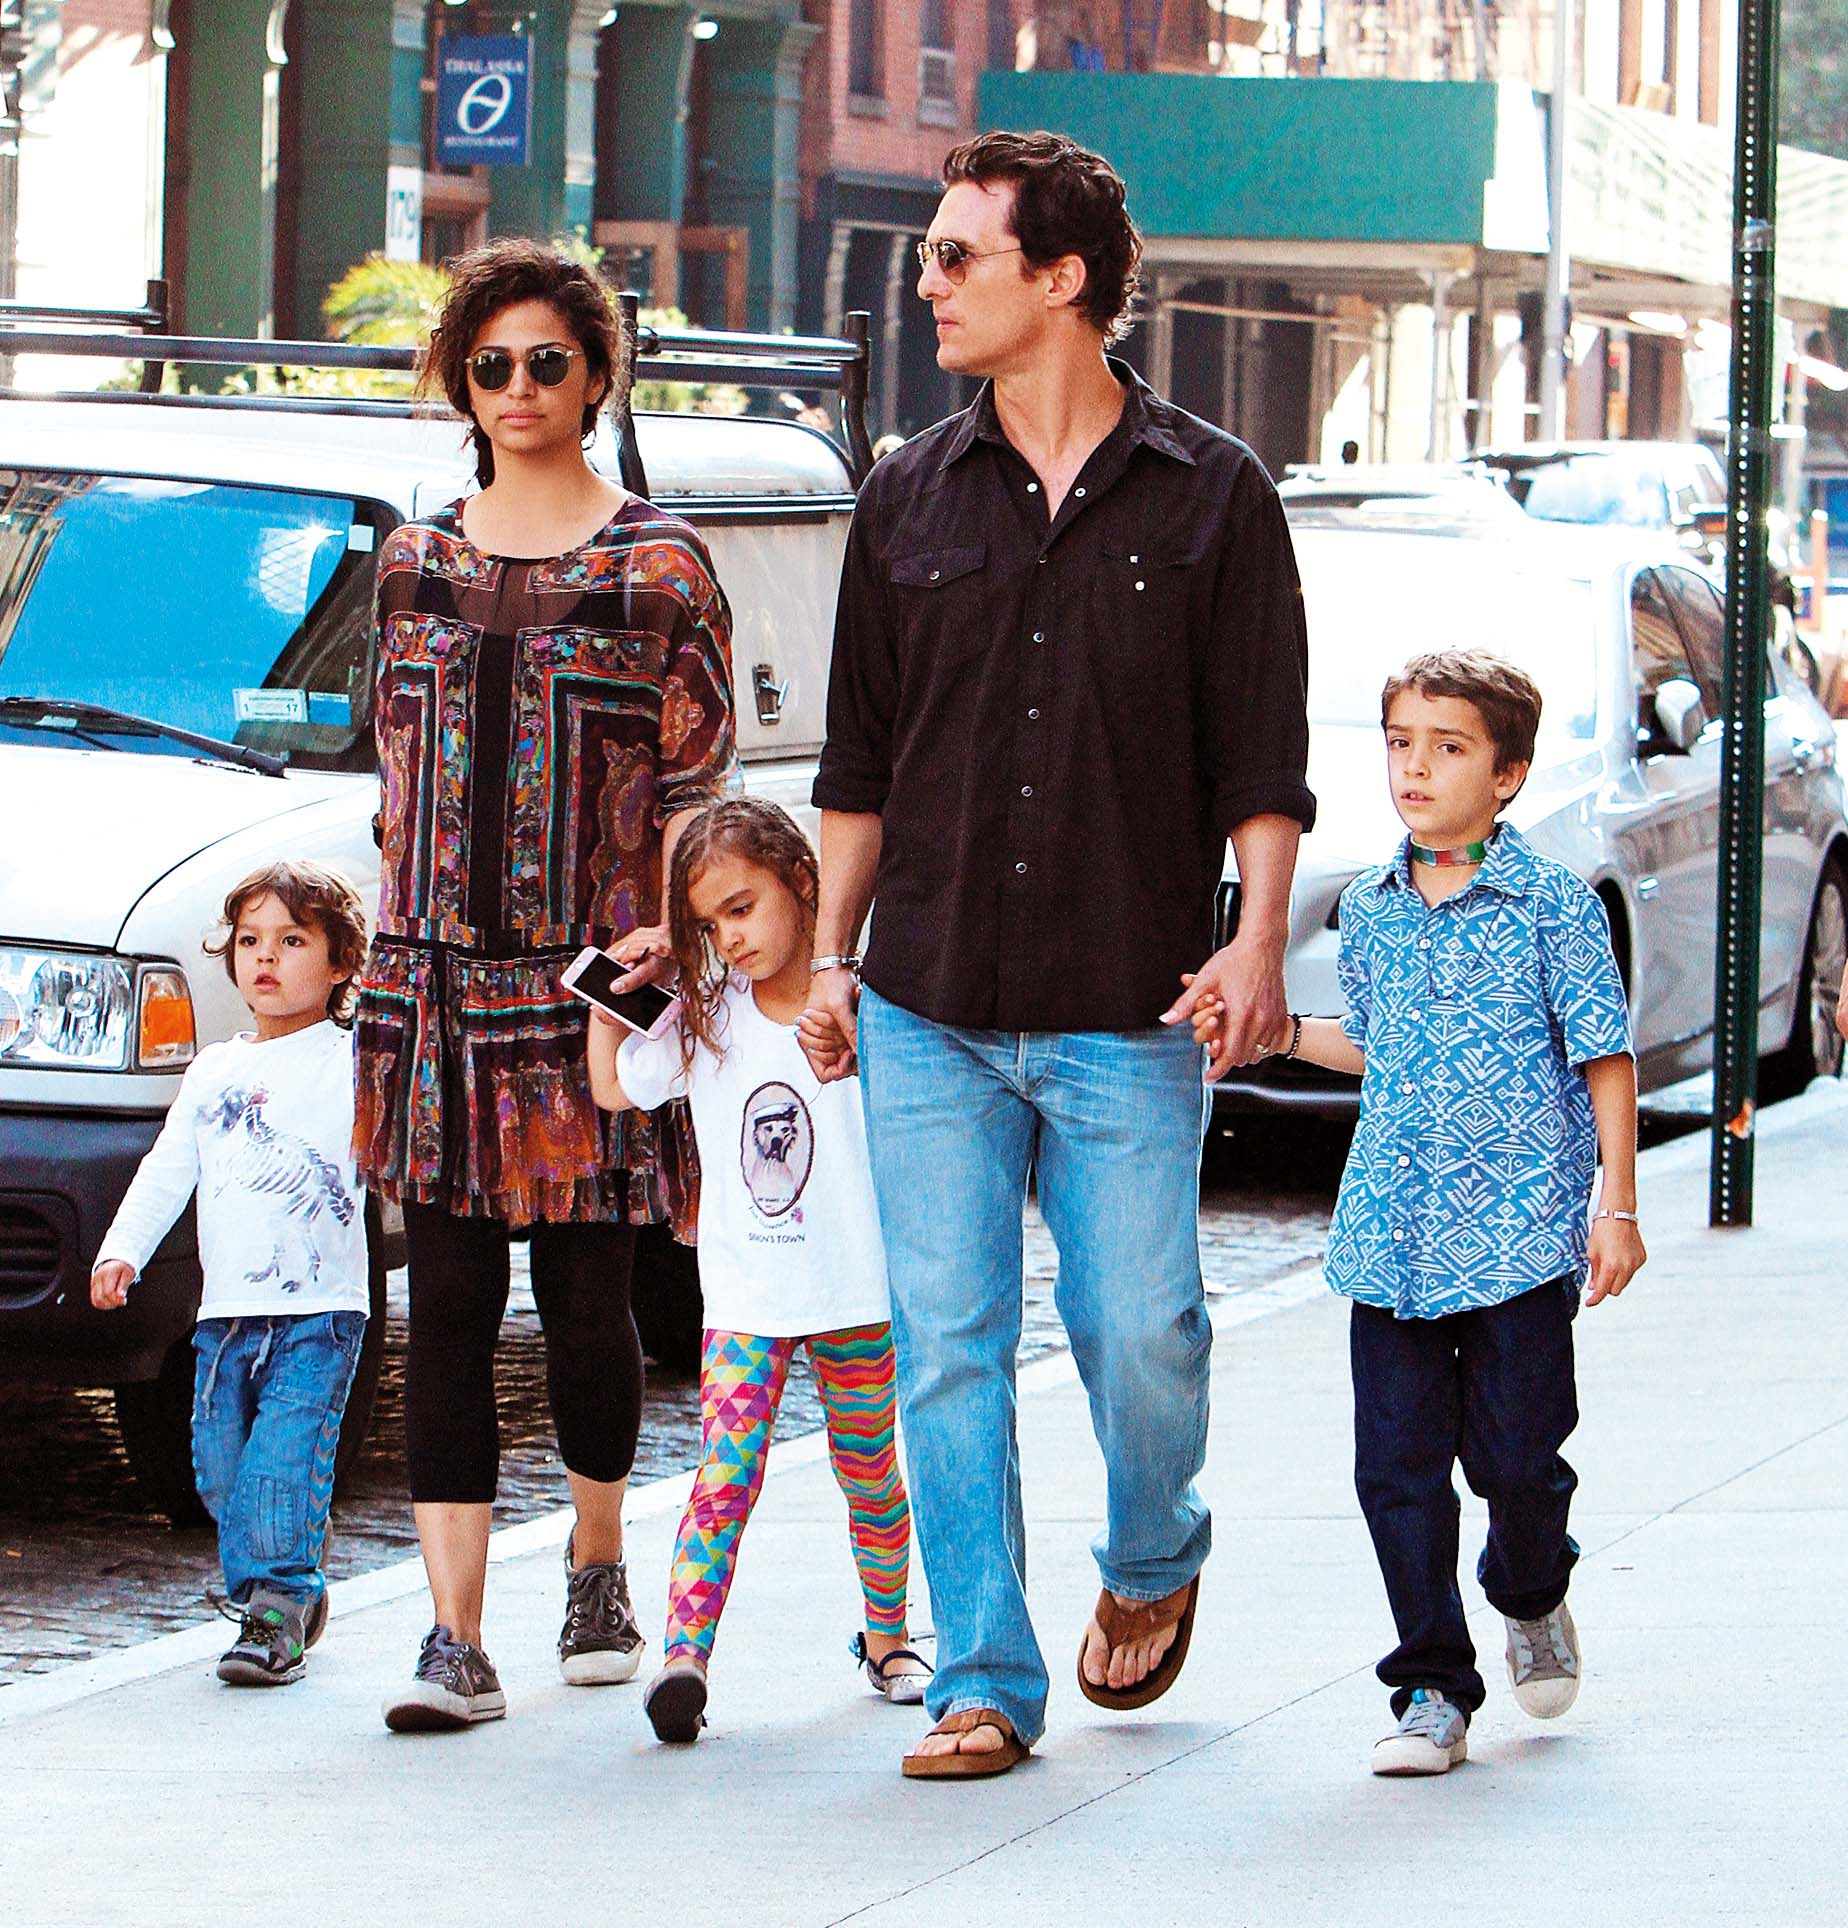 Matthew McConaughey and wife Camila Alves, along with their three children Livingston, Levi, and Vida, go on a family stroll in New York City. Pictured: Matthew McConaughey, Levi Alves McConaughey, Vida Alves McConaughey, Livingston Alves McConaughey, Image: 292786043, License: Rights-managed, Restrictions: -ALLCOUNTRY, Model Release: no, Credit line: Said Elatab / Splash / Profimedia